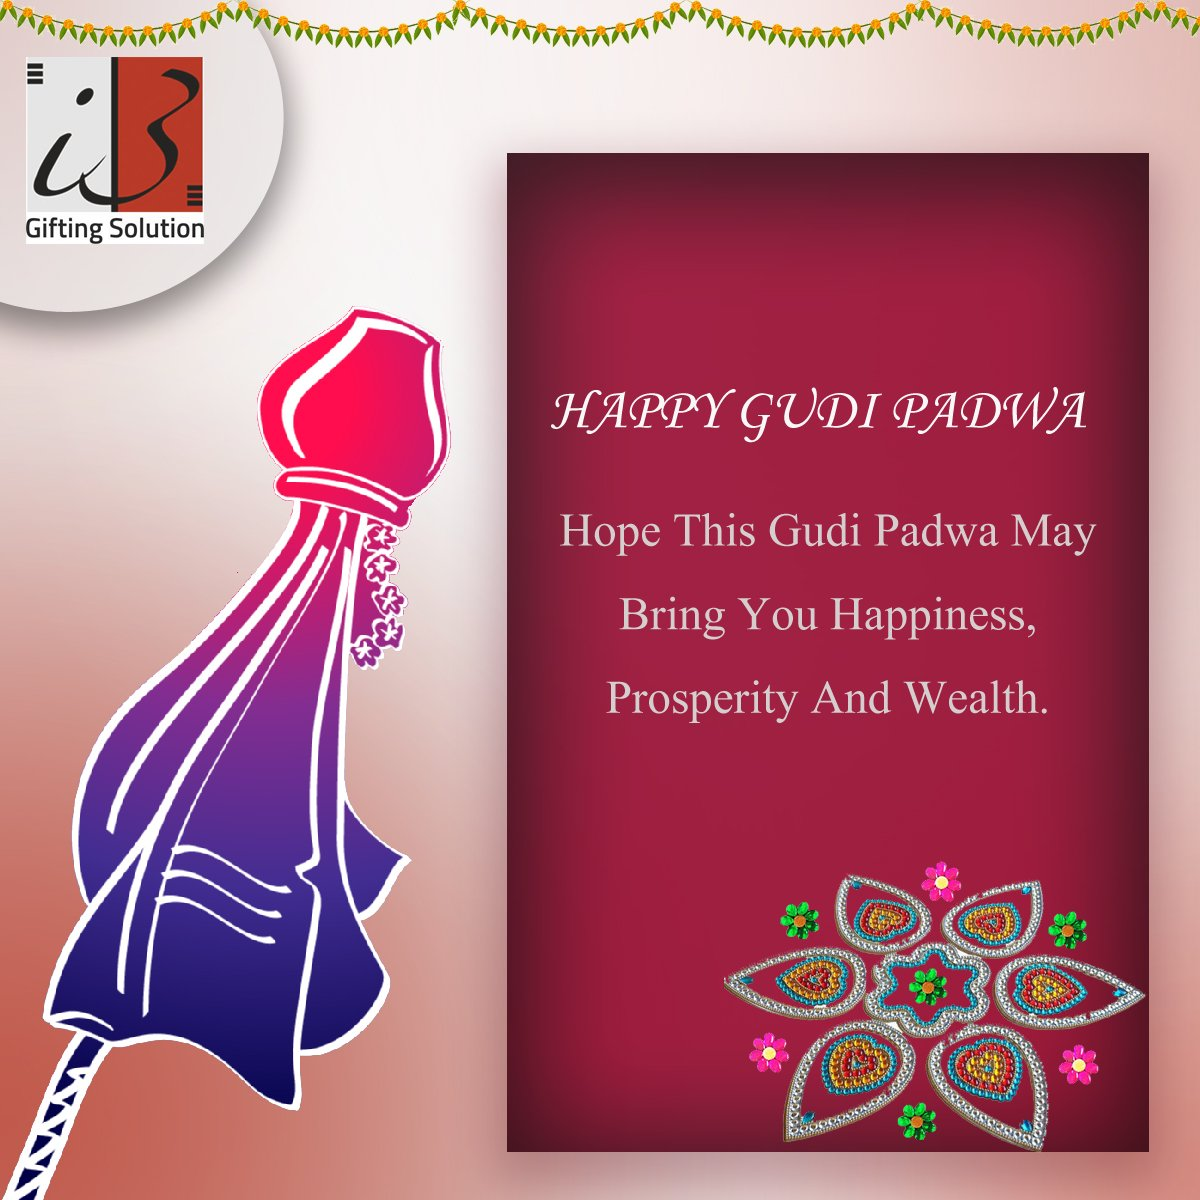 Happy #GudiPadwa Hope this Gudi Padwa May Bring You #Happiness, #Prosperity And #Wealth. #GudiPadwa2017 #HappyNewYear2017 #HappyNewYear<br>http://pic.twitter.com/L2SPH8F7YW